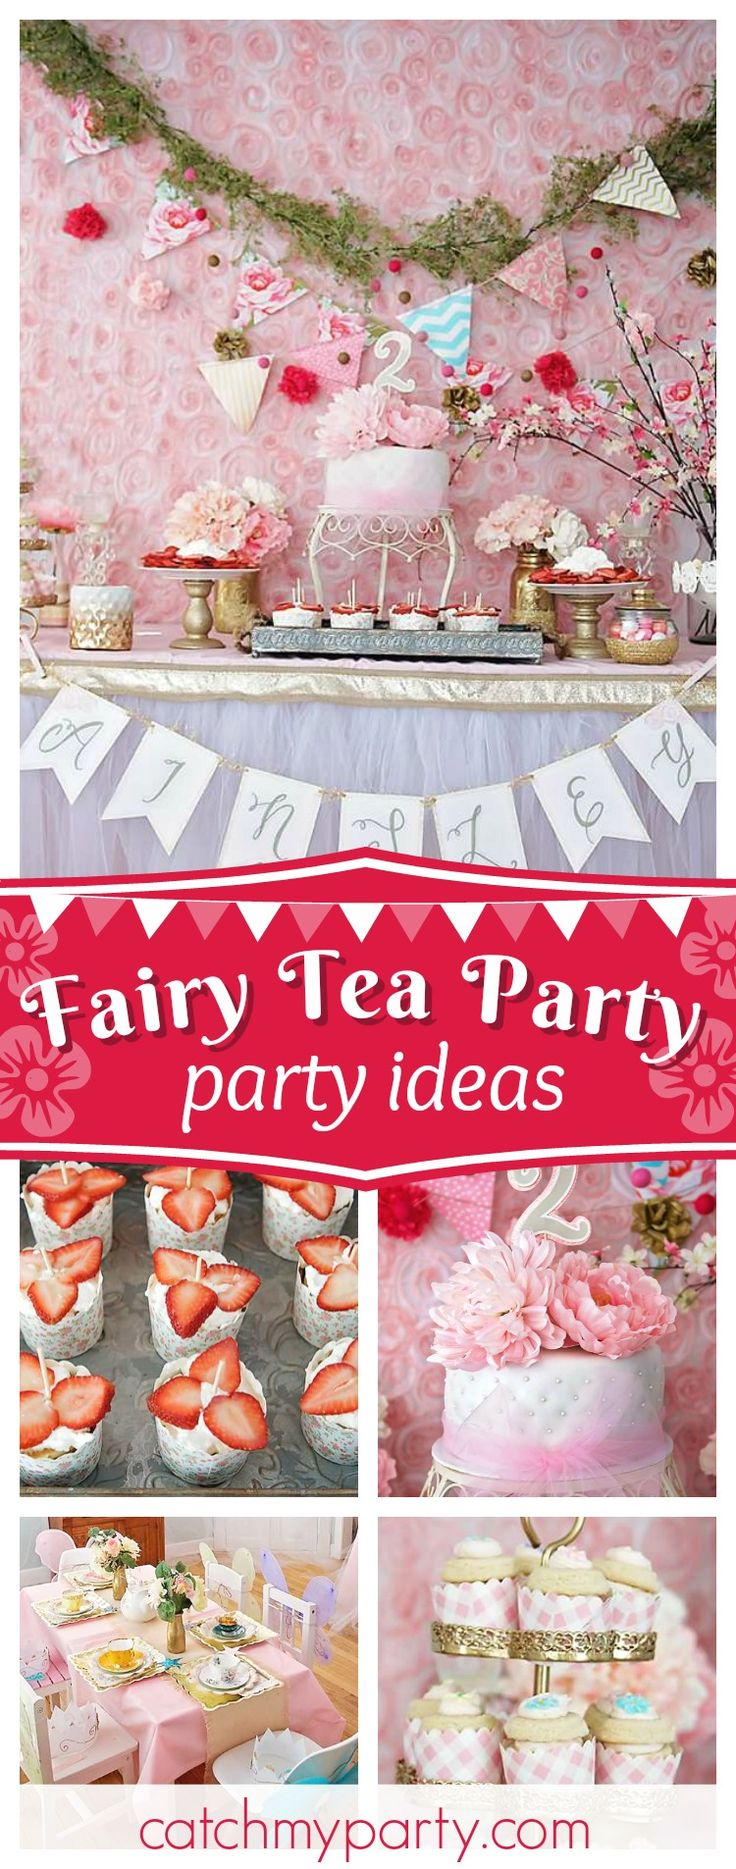 Take a look at this beautiful shabby chic Fairy Princess Tea Party! The birthday cake is so pretty!!  See more party ideas and share yours at CatchMyParty.com #fairy #teaparty #shabbychic